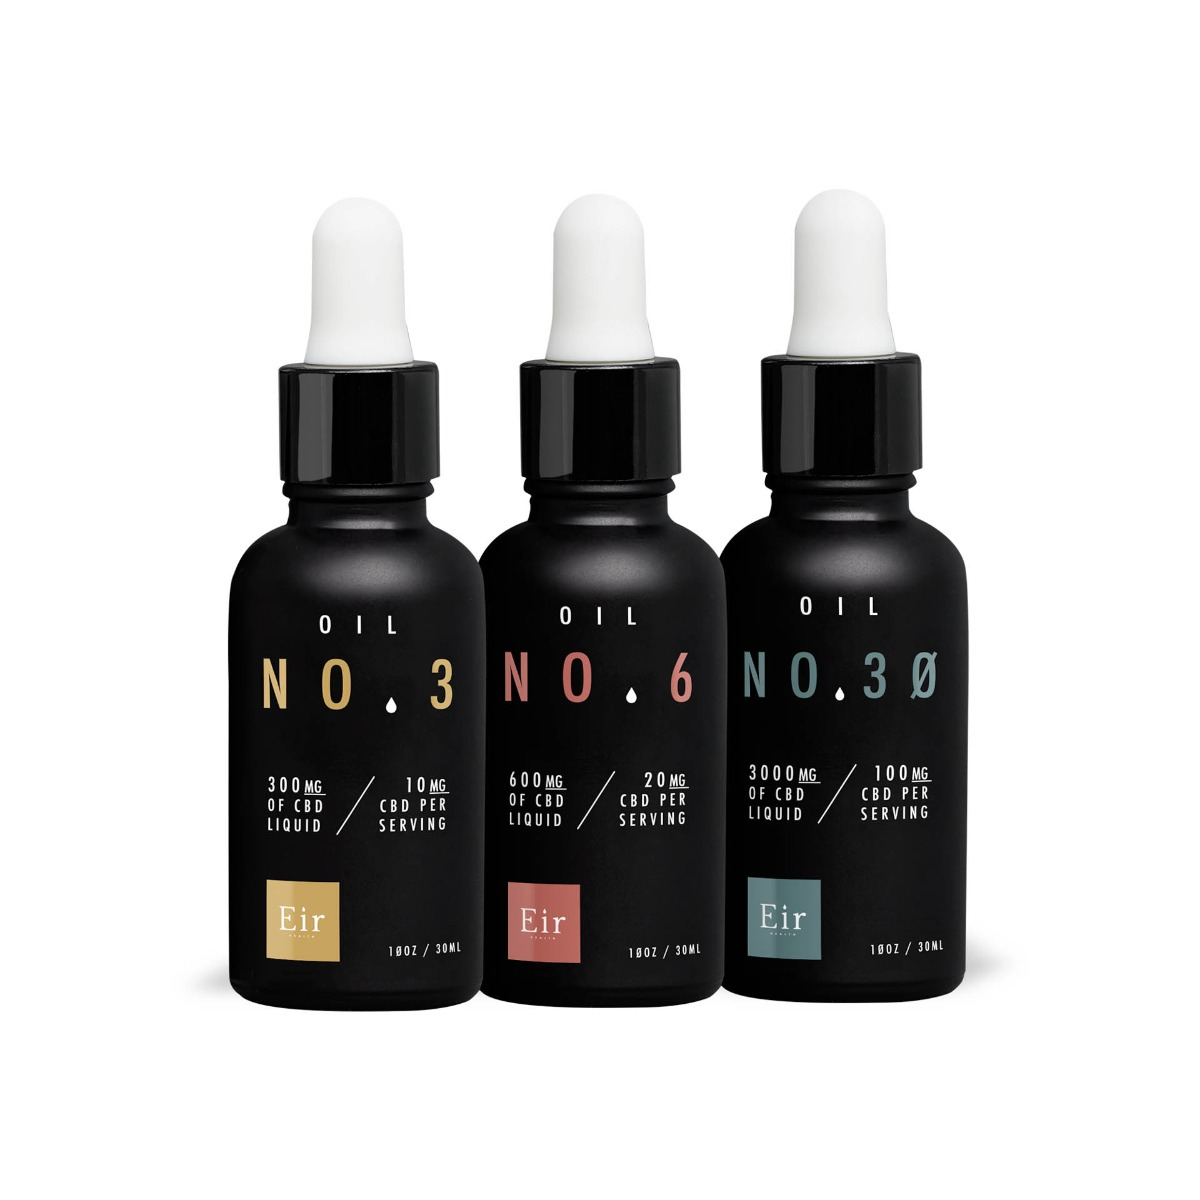 Full Spectrum CBD Oils available in all EU countries